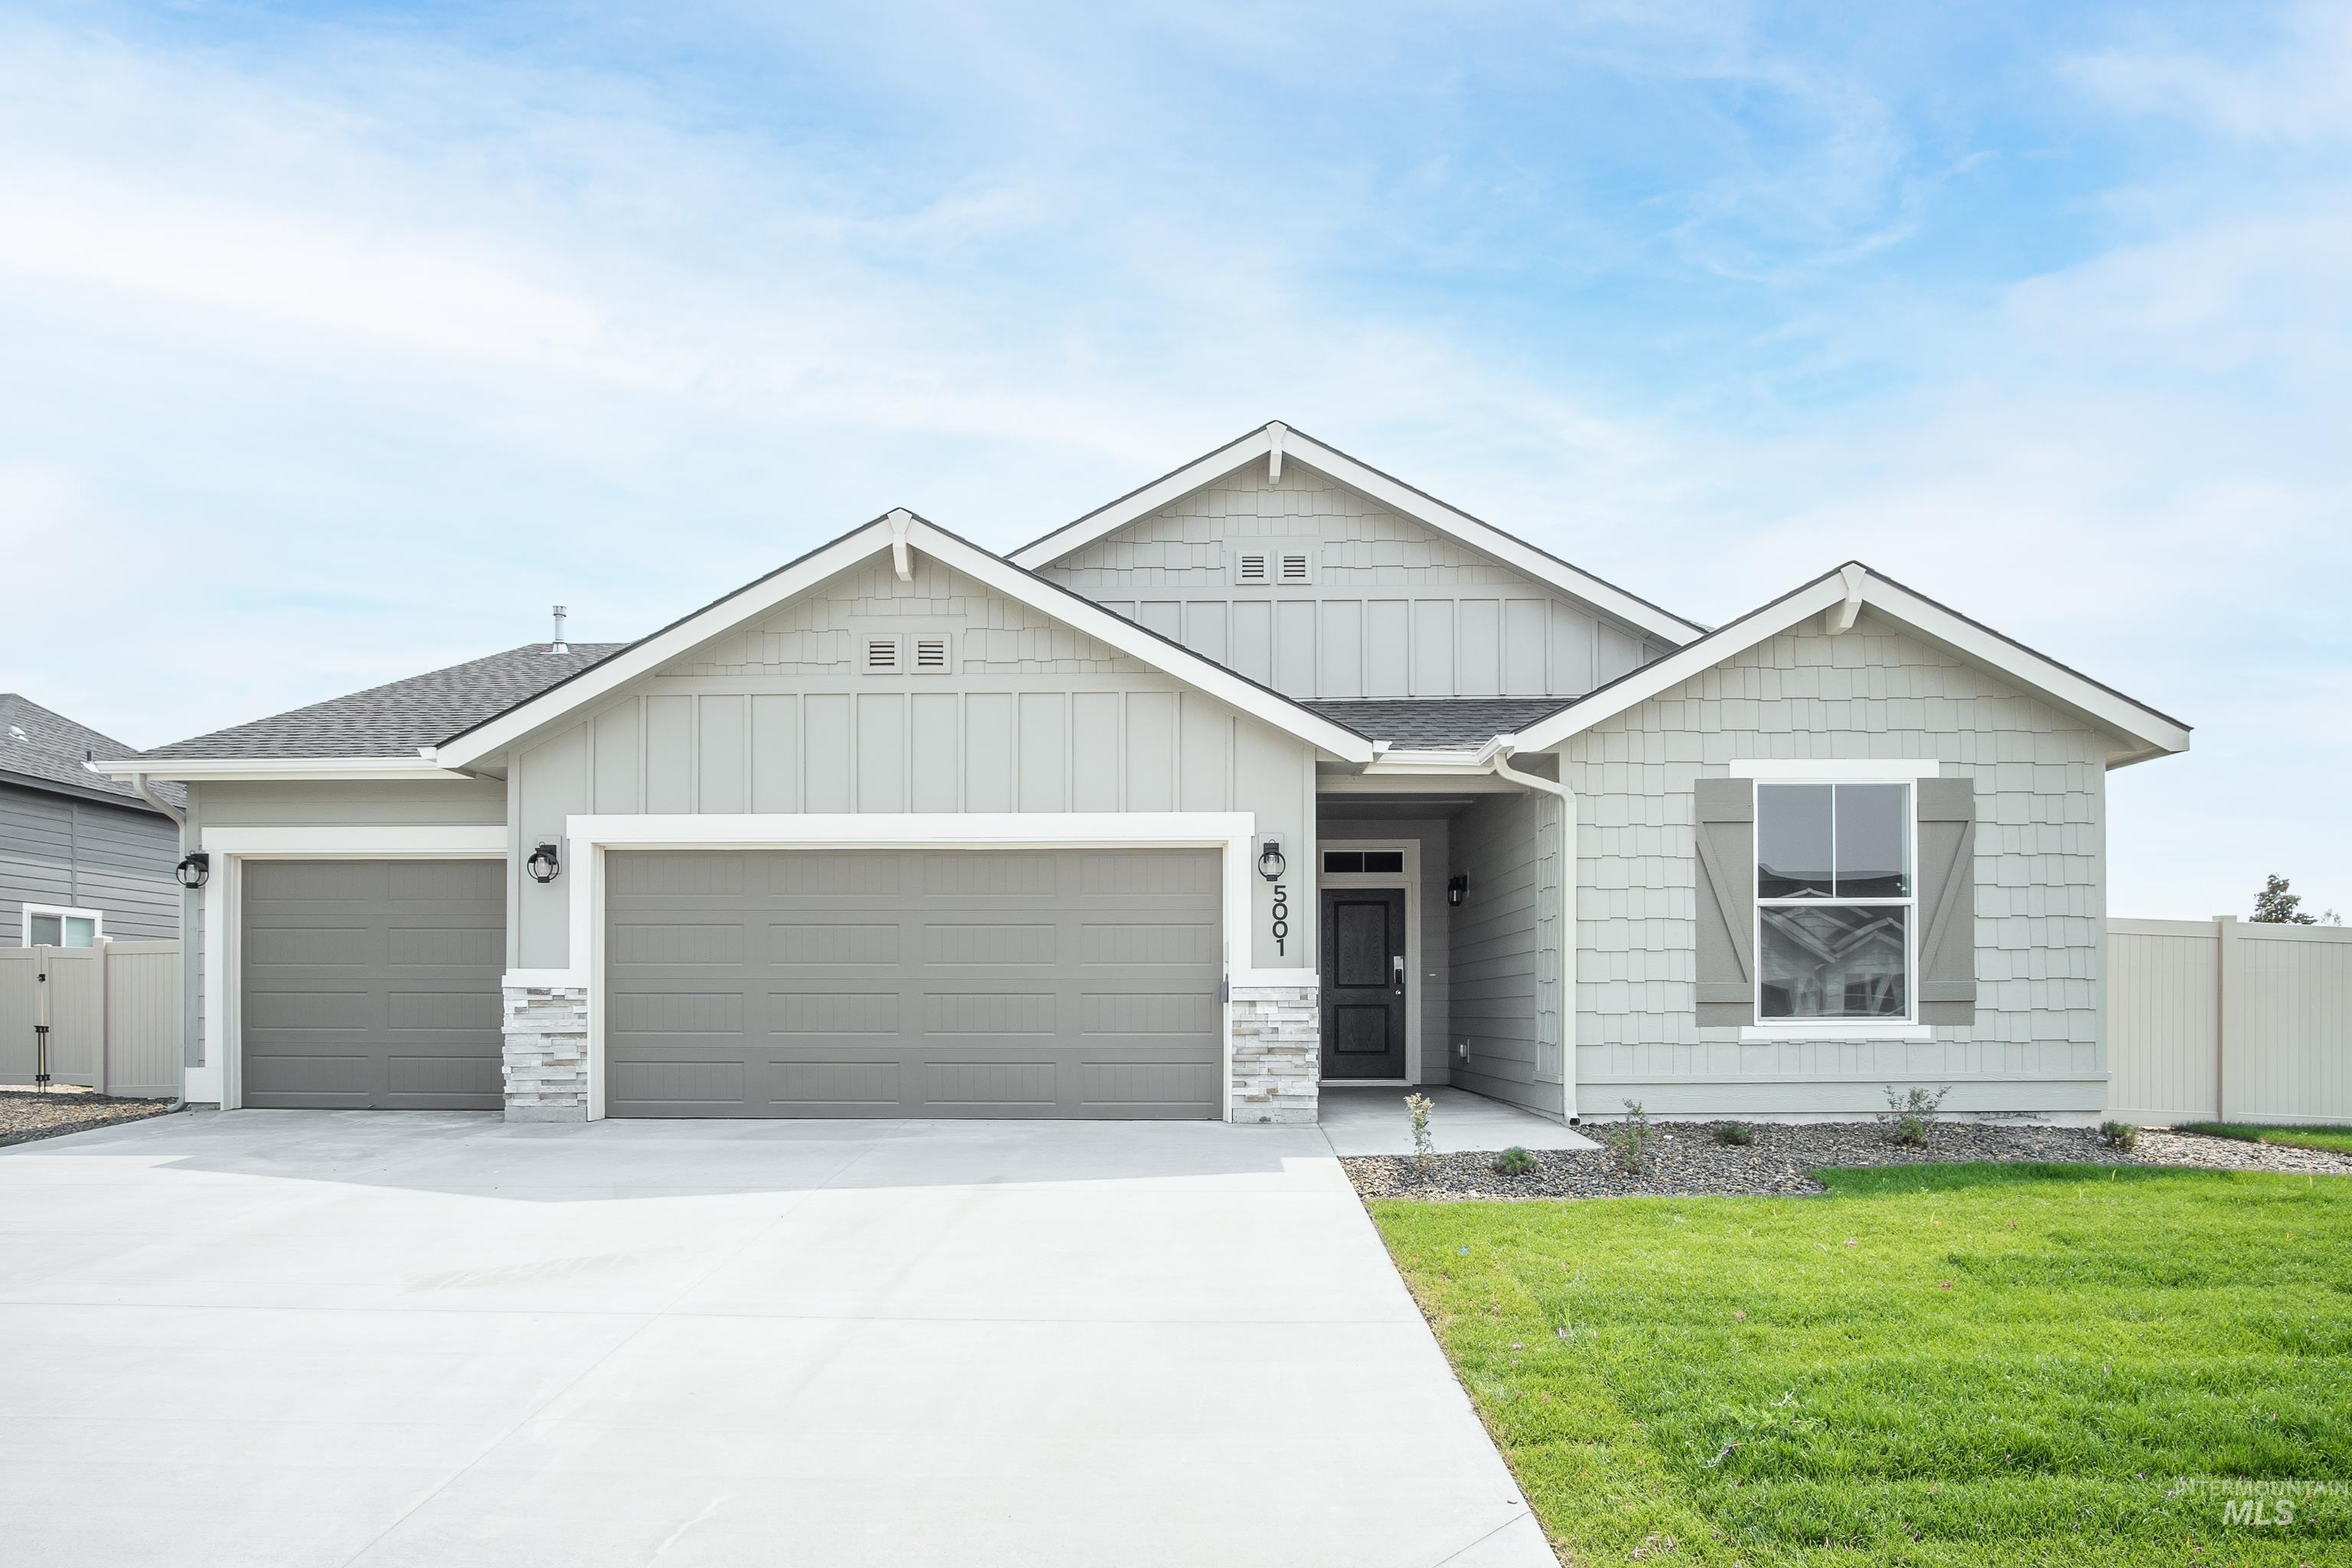 Get $35k with our Buy Now, Get More Promo NOW thru7/31. Want to tour this home NOW? Get on-demand access with TOUR NOW. The Kobi 2023 is the single level home with 4 spacious bedrooms are split across the home. The long hallway leads you into a large living space and kitchen. No backyard neighbors. Price includes quartz kitchen countertops, ss appliances, partial fencing, dual vanity, evp flooring and more! No side neighbors. Exterior photos similar. RCE-923